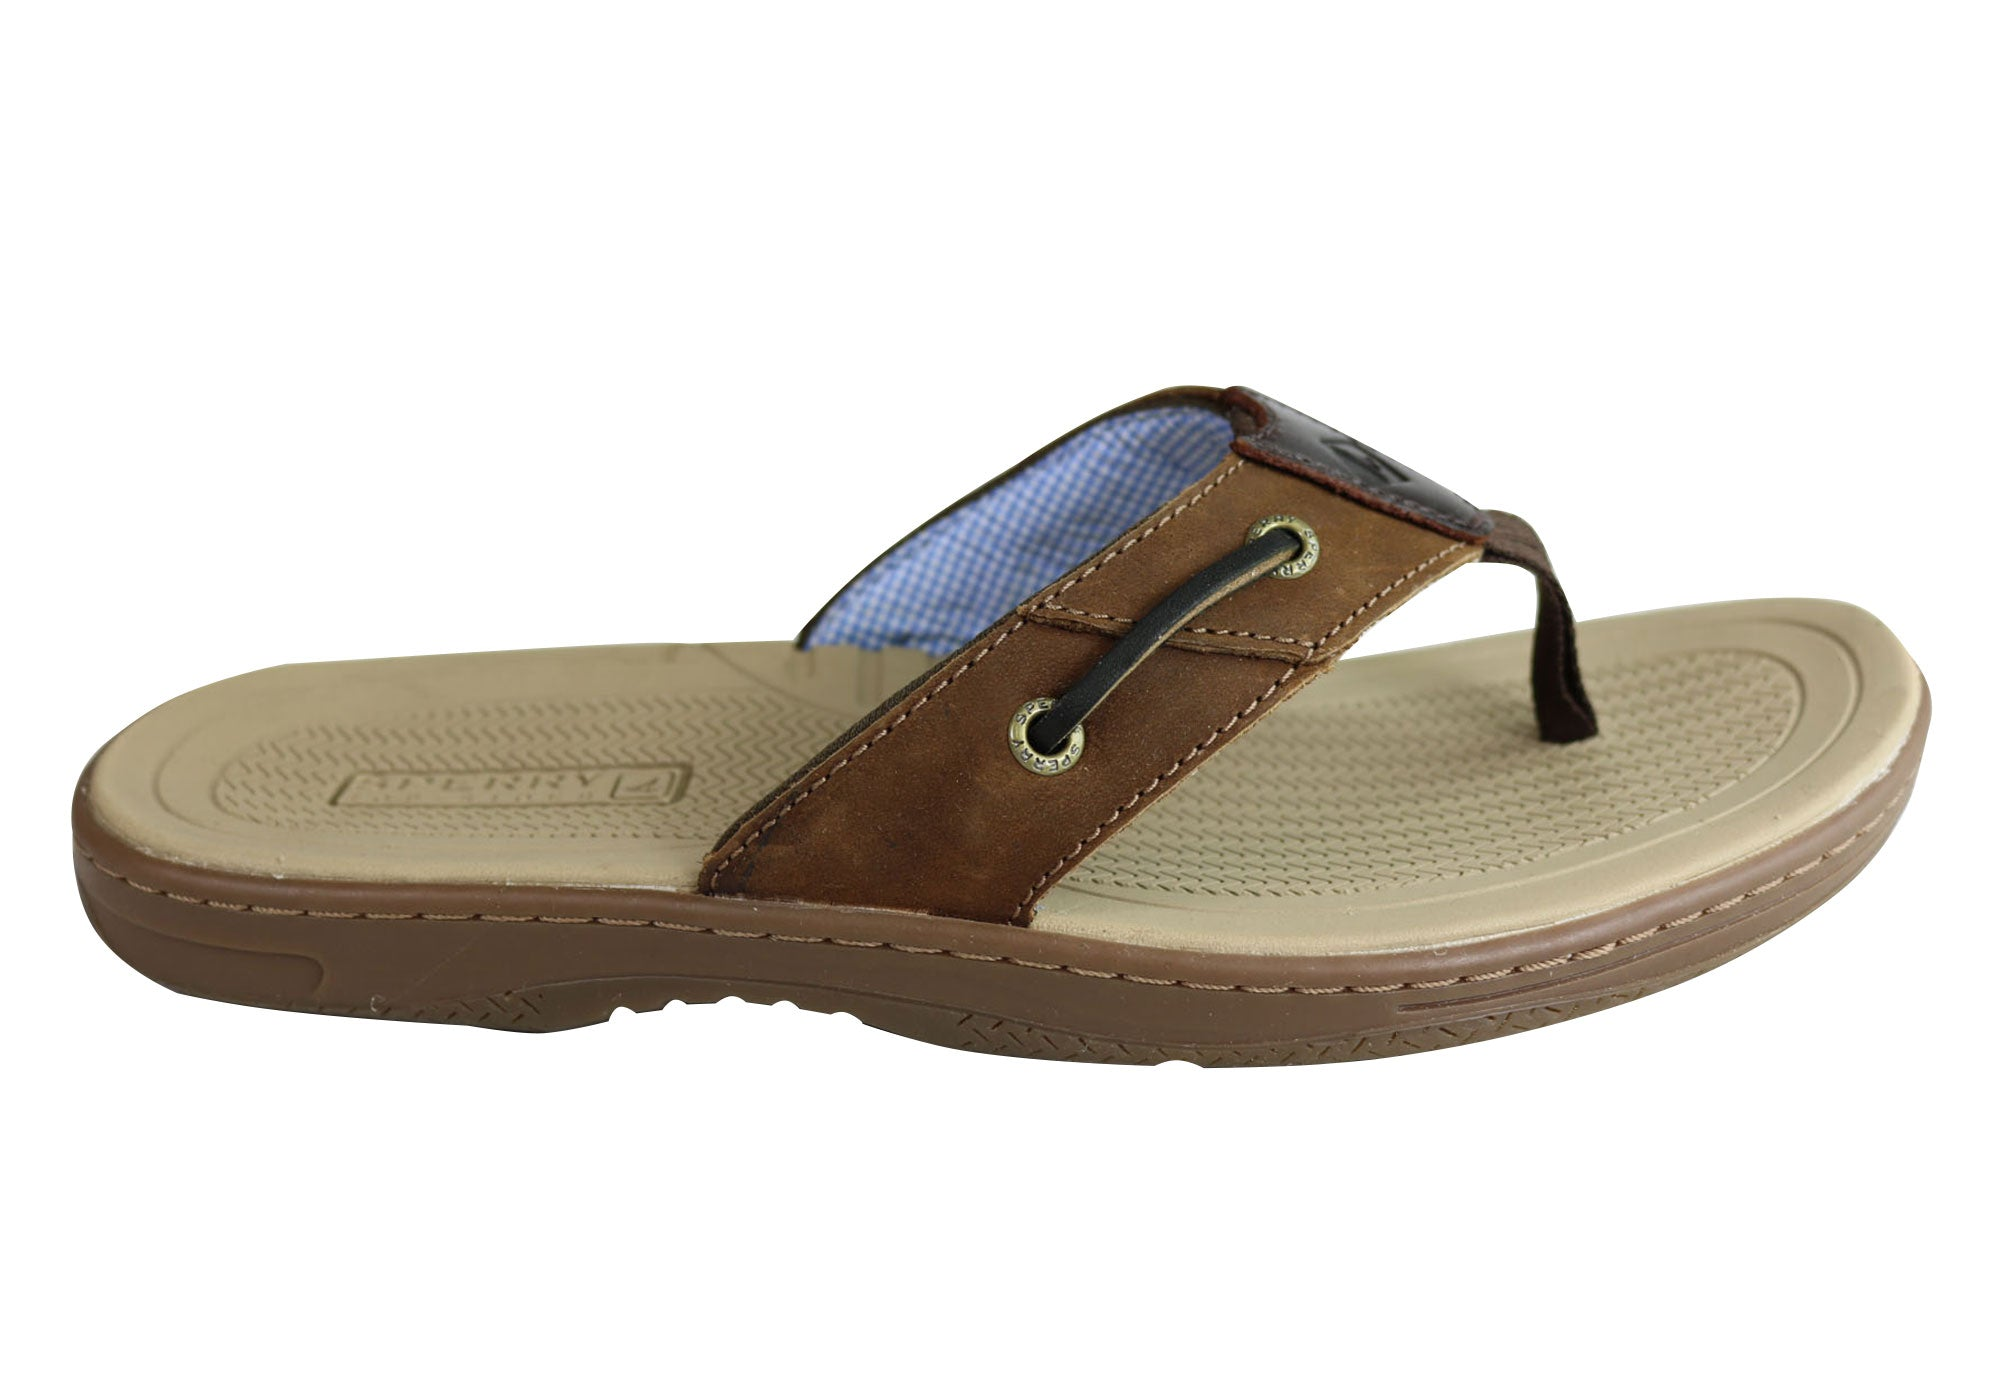 Sperry Mens Comfortable Leather